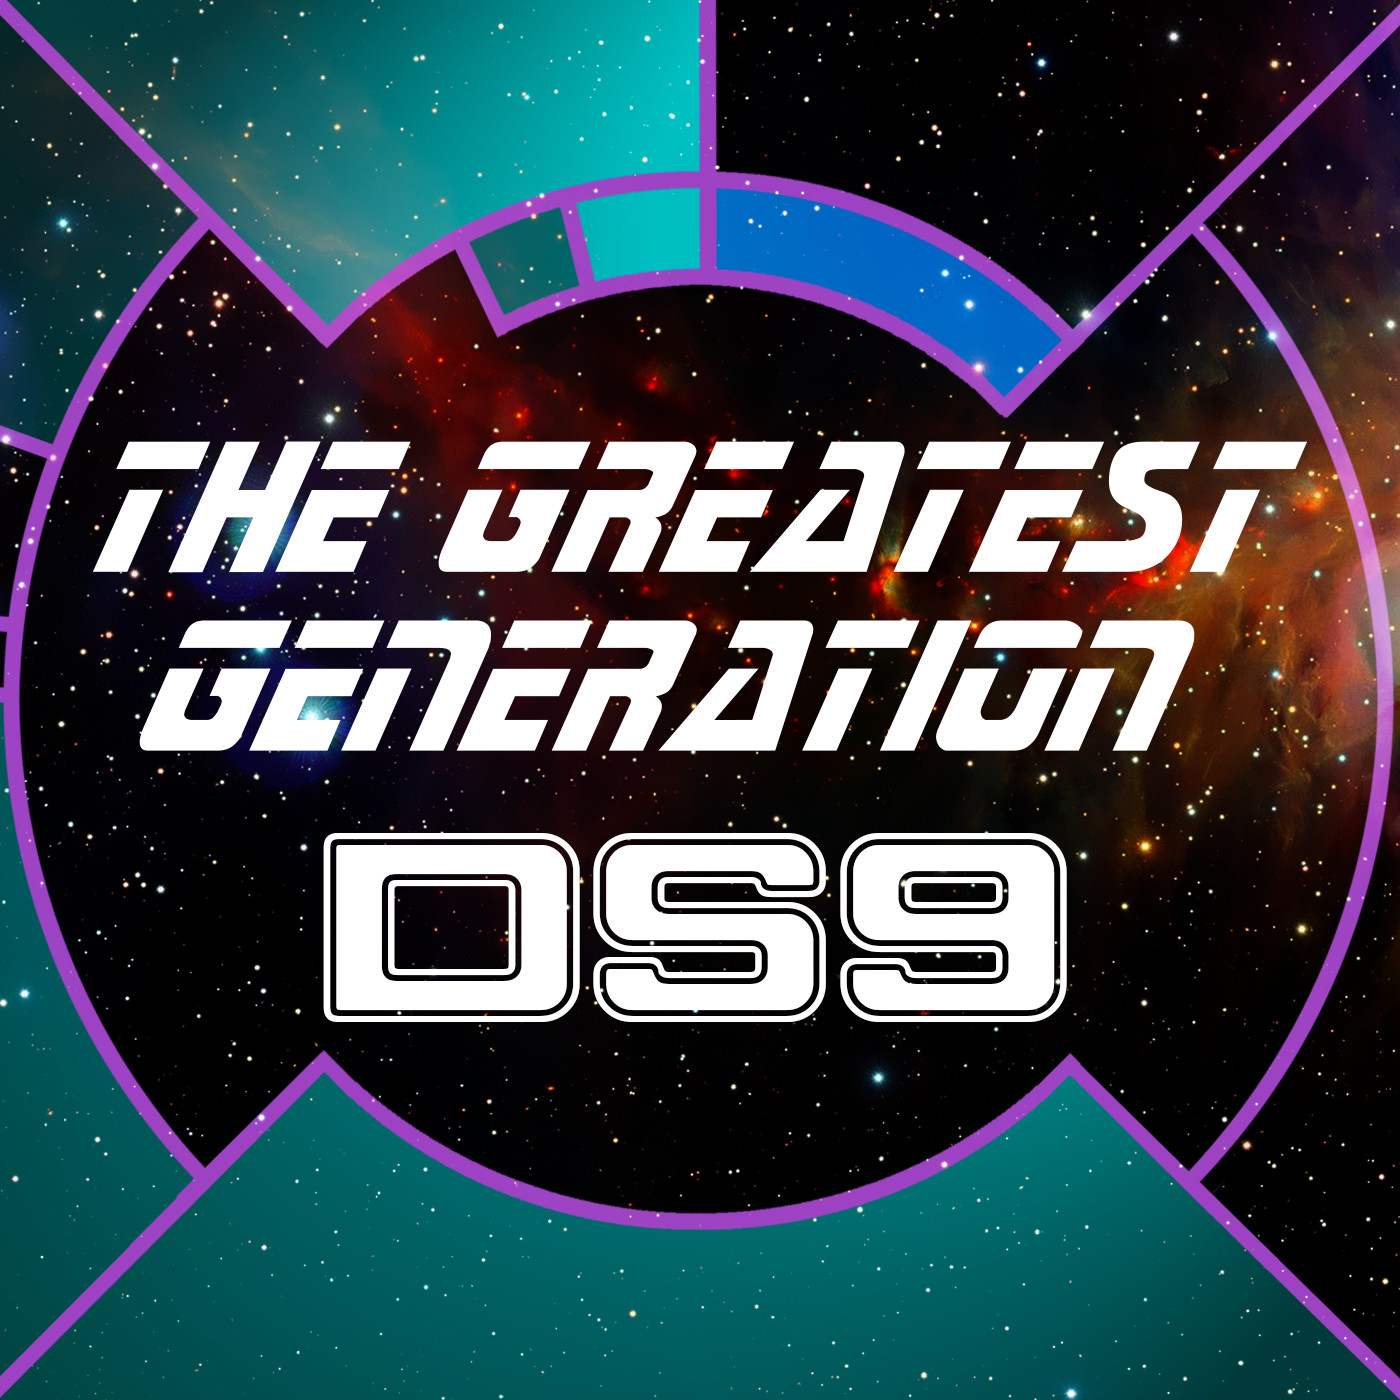 The Greatest Generation: A Star Trek podcast by two guys who are a little bit embarrassed to have a Star Trek podcast